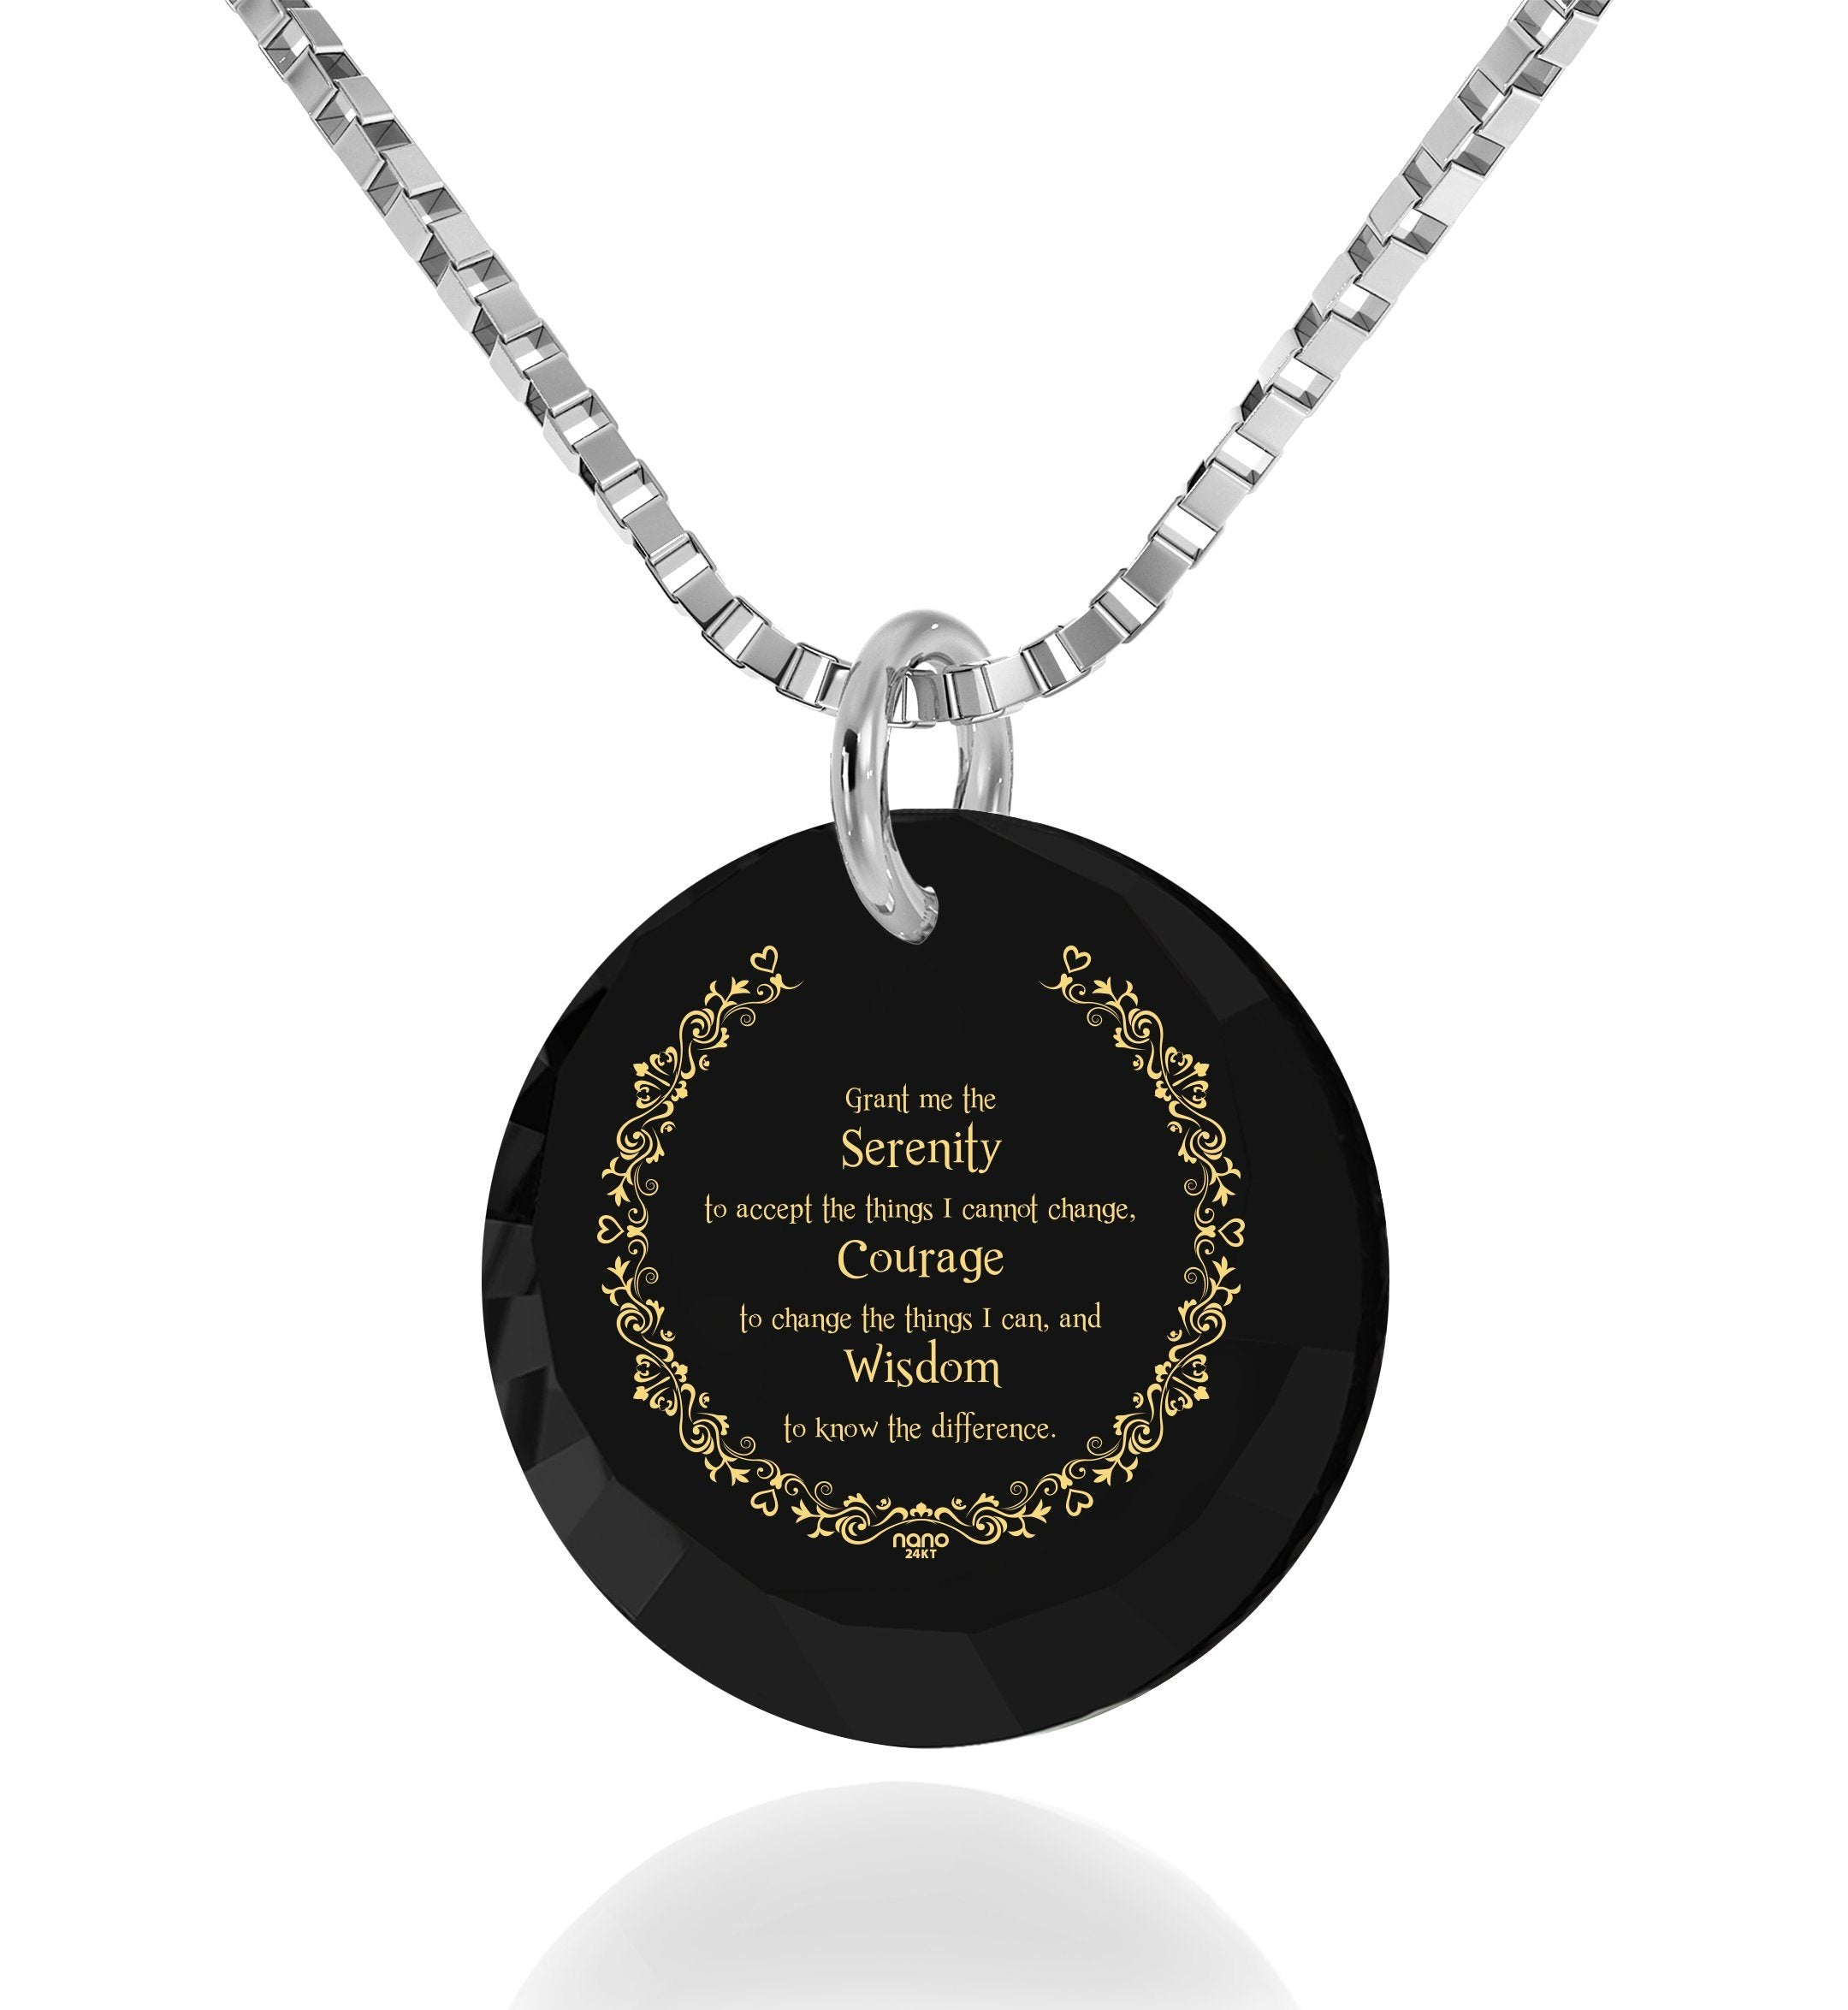 Serenity Prayer Jewelry: Christmas Presents for Him, Cool Man Gifts, Nano Jewelry